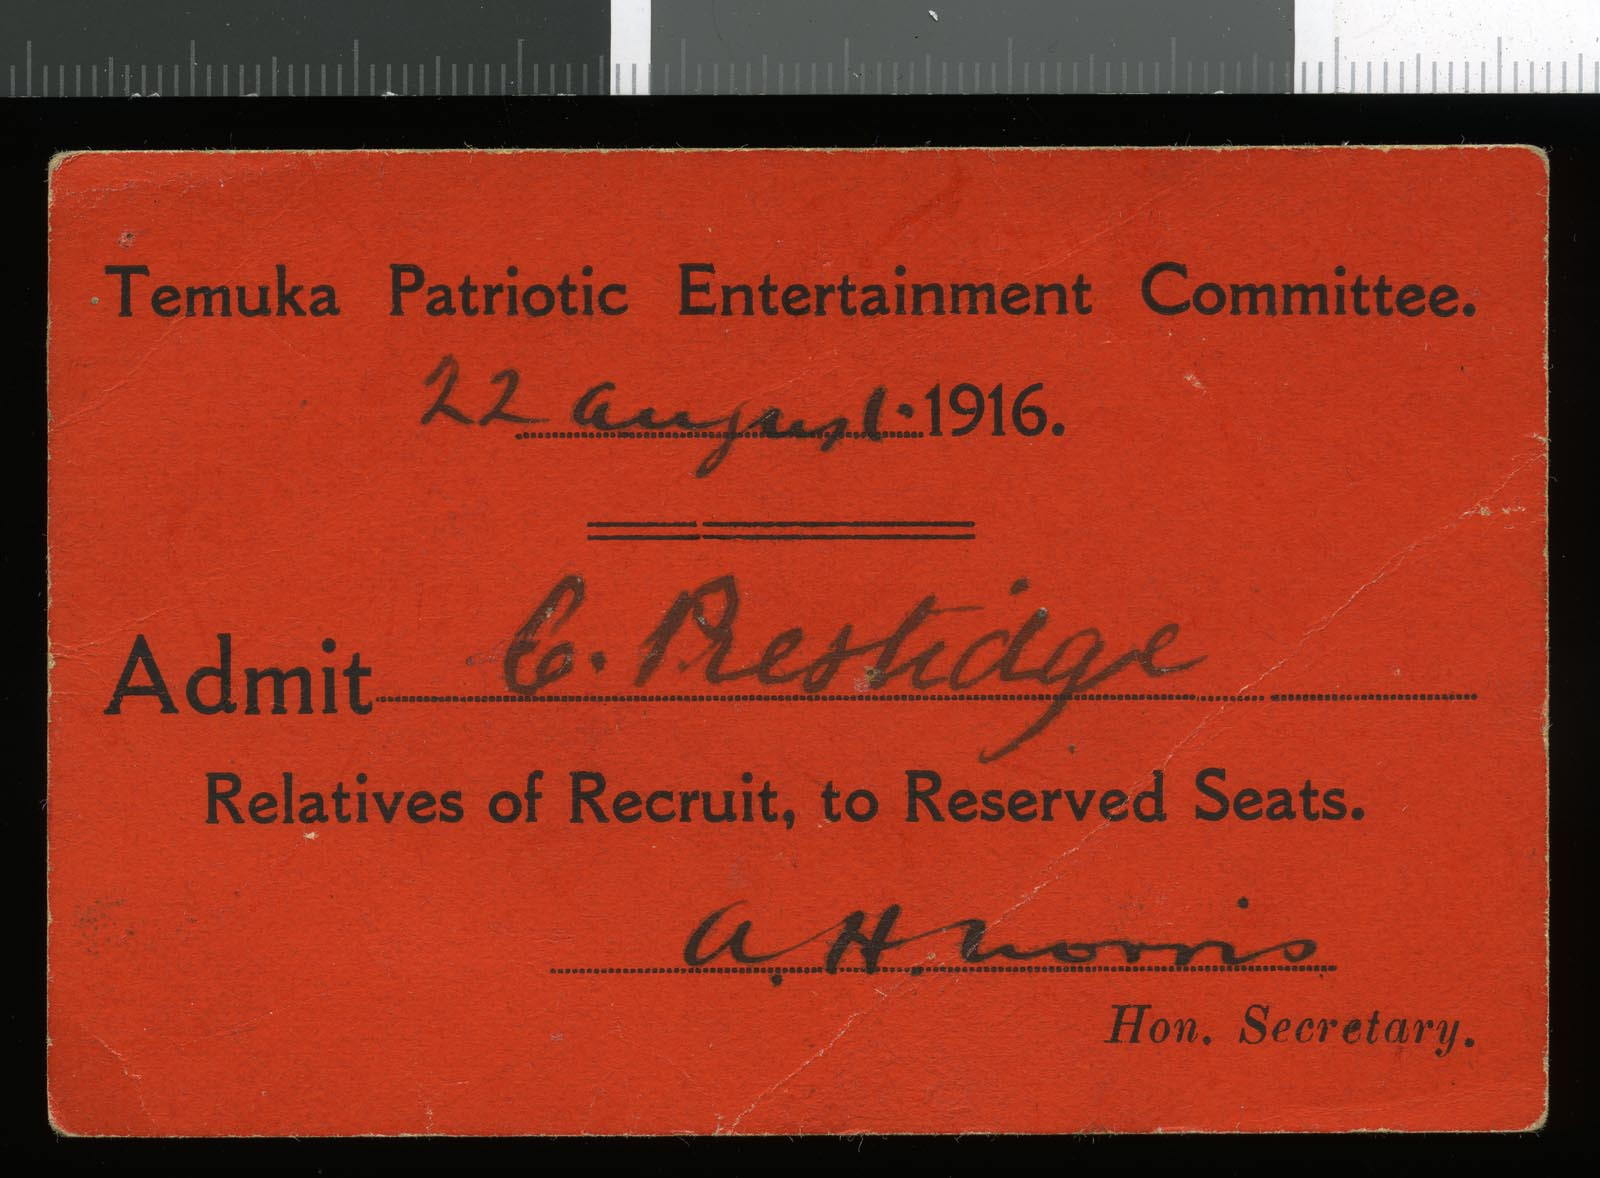 Temuka Patriotic Entertainment Committee ticket, dated 22 August 1916